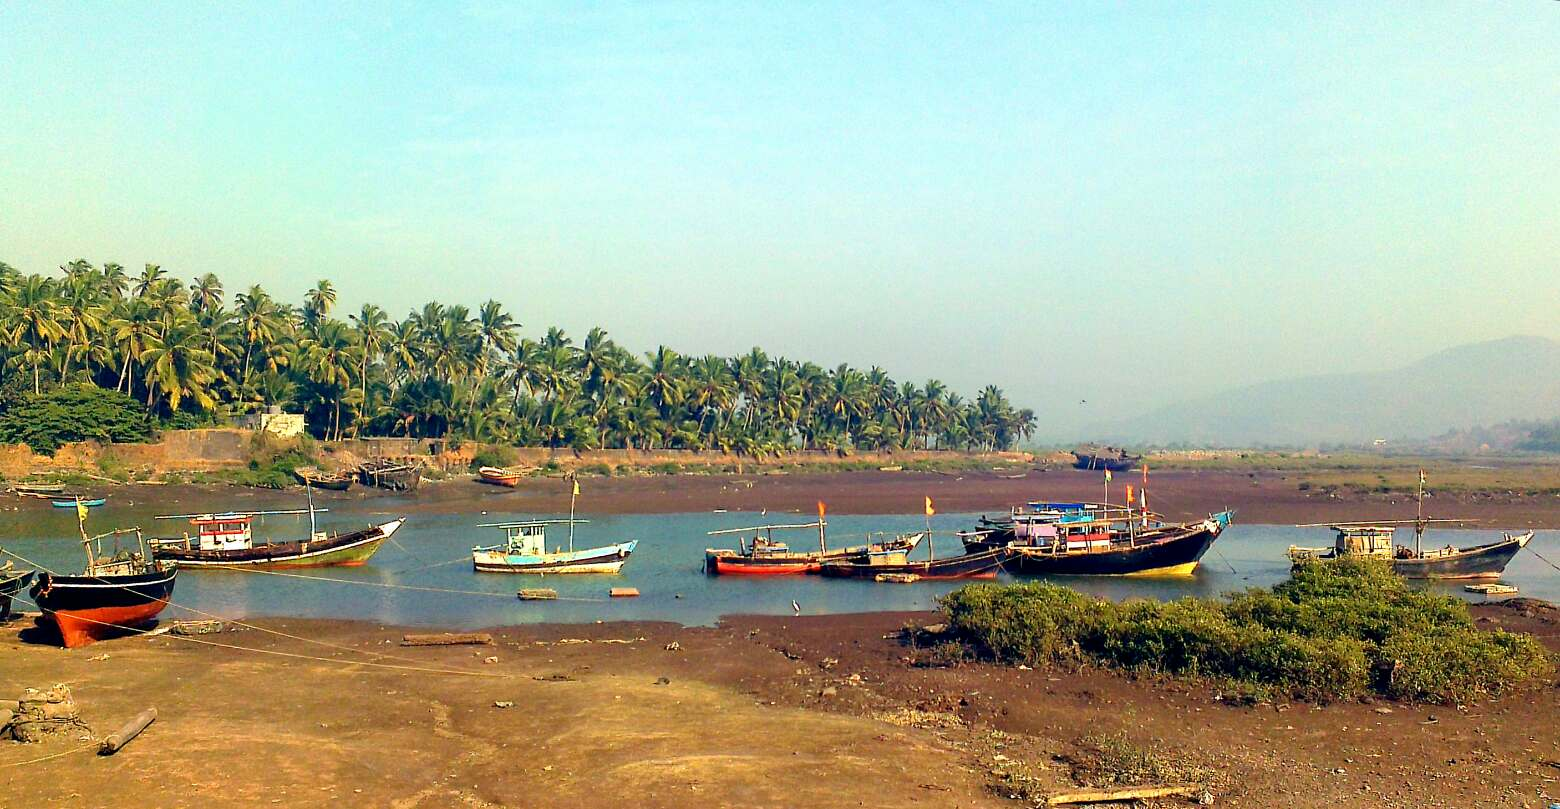 Day 7 fishing village near Dhombivali and Shirvandan